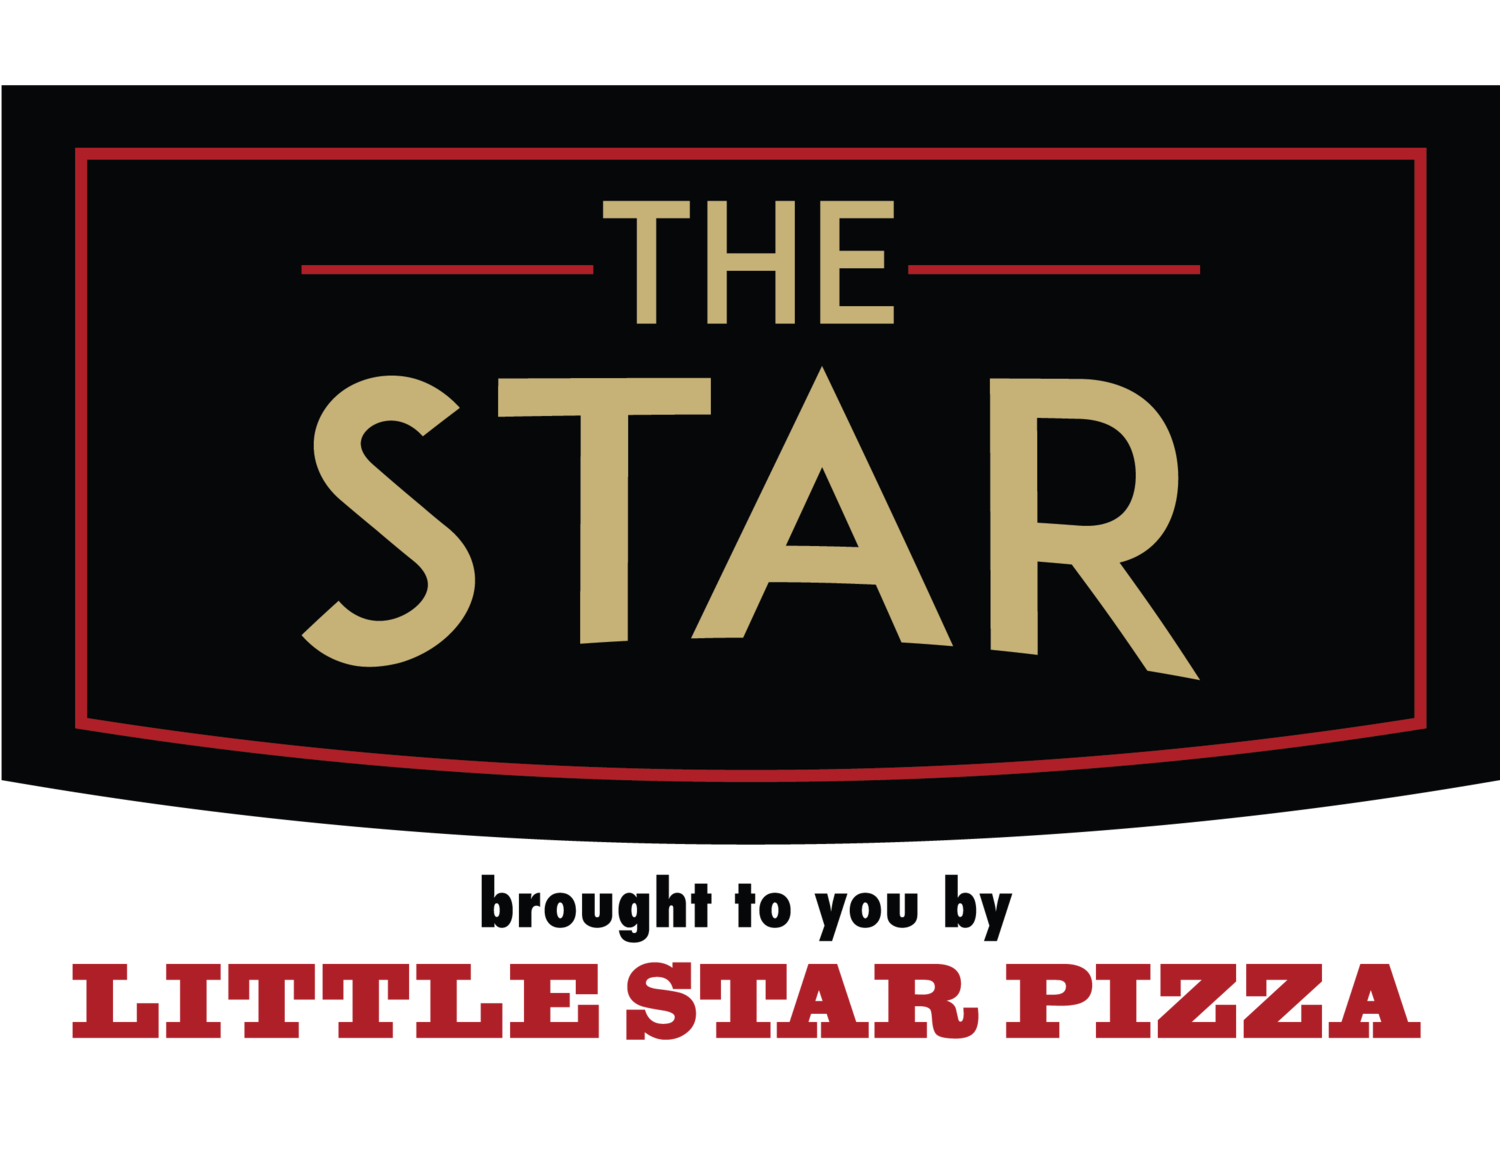 The Star by Little Star Pizza